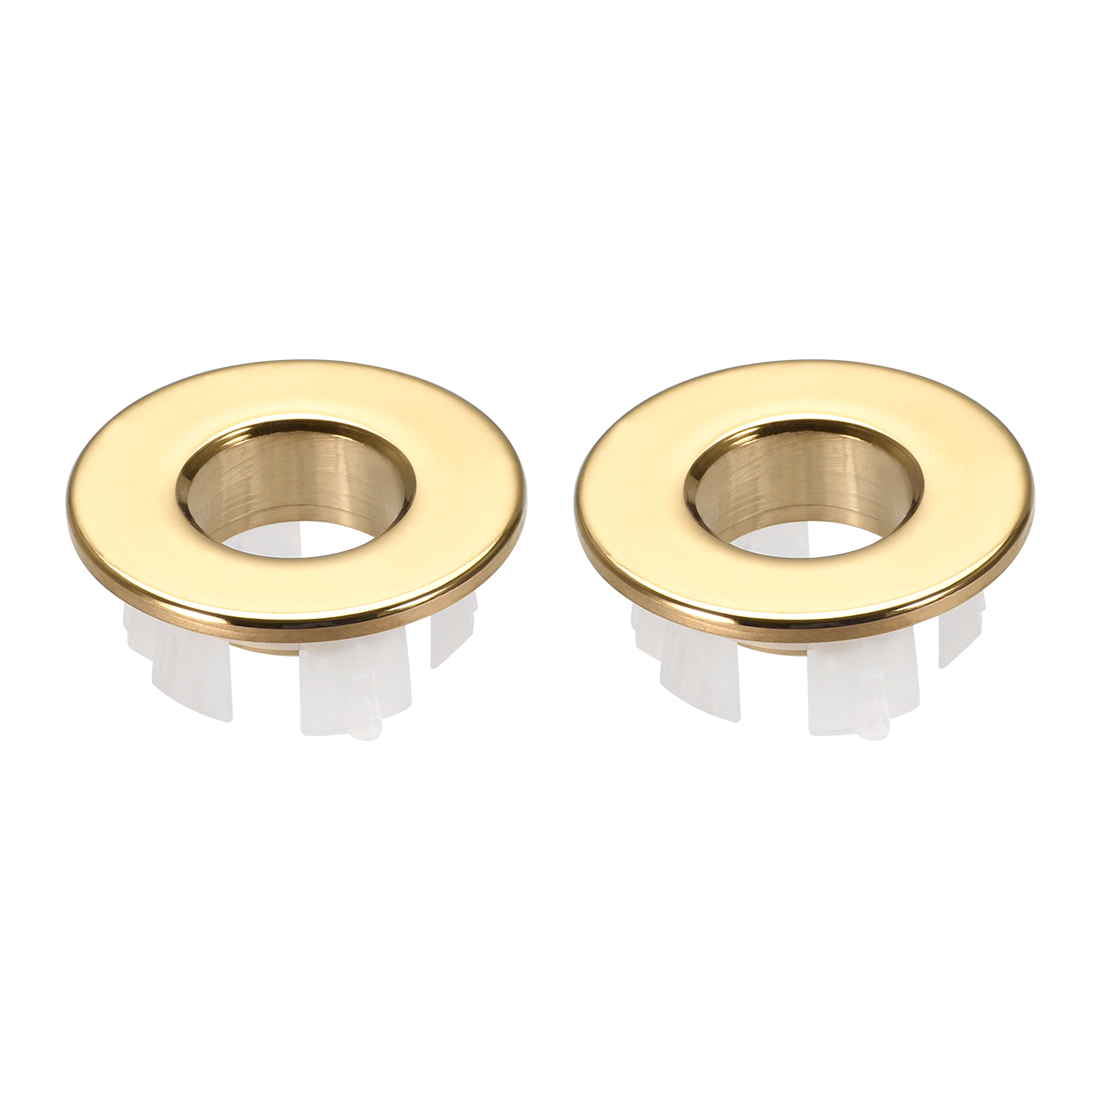 Sink Basin Trim Overflow Cover Copper Insert in Hole Round Caps Gold Tone 2Pcs